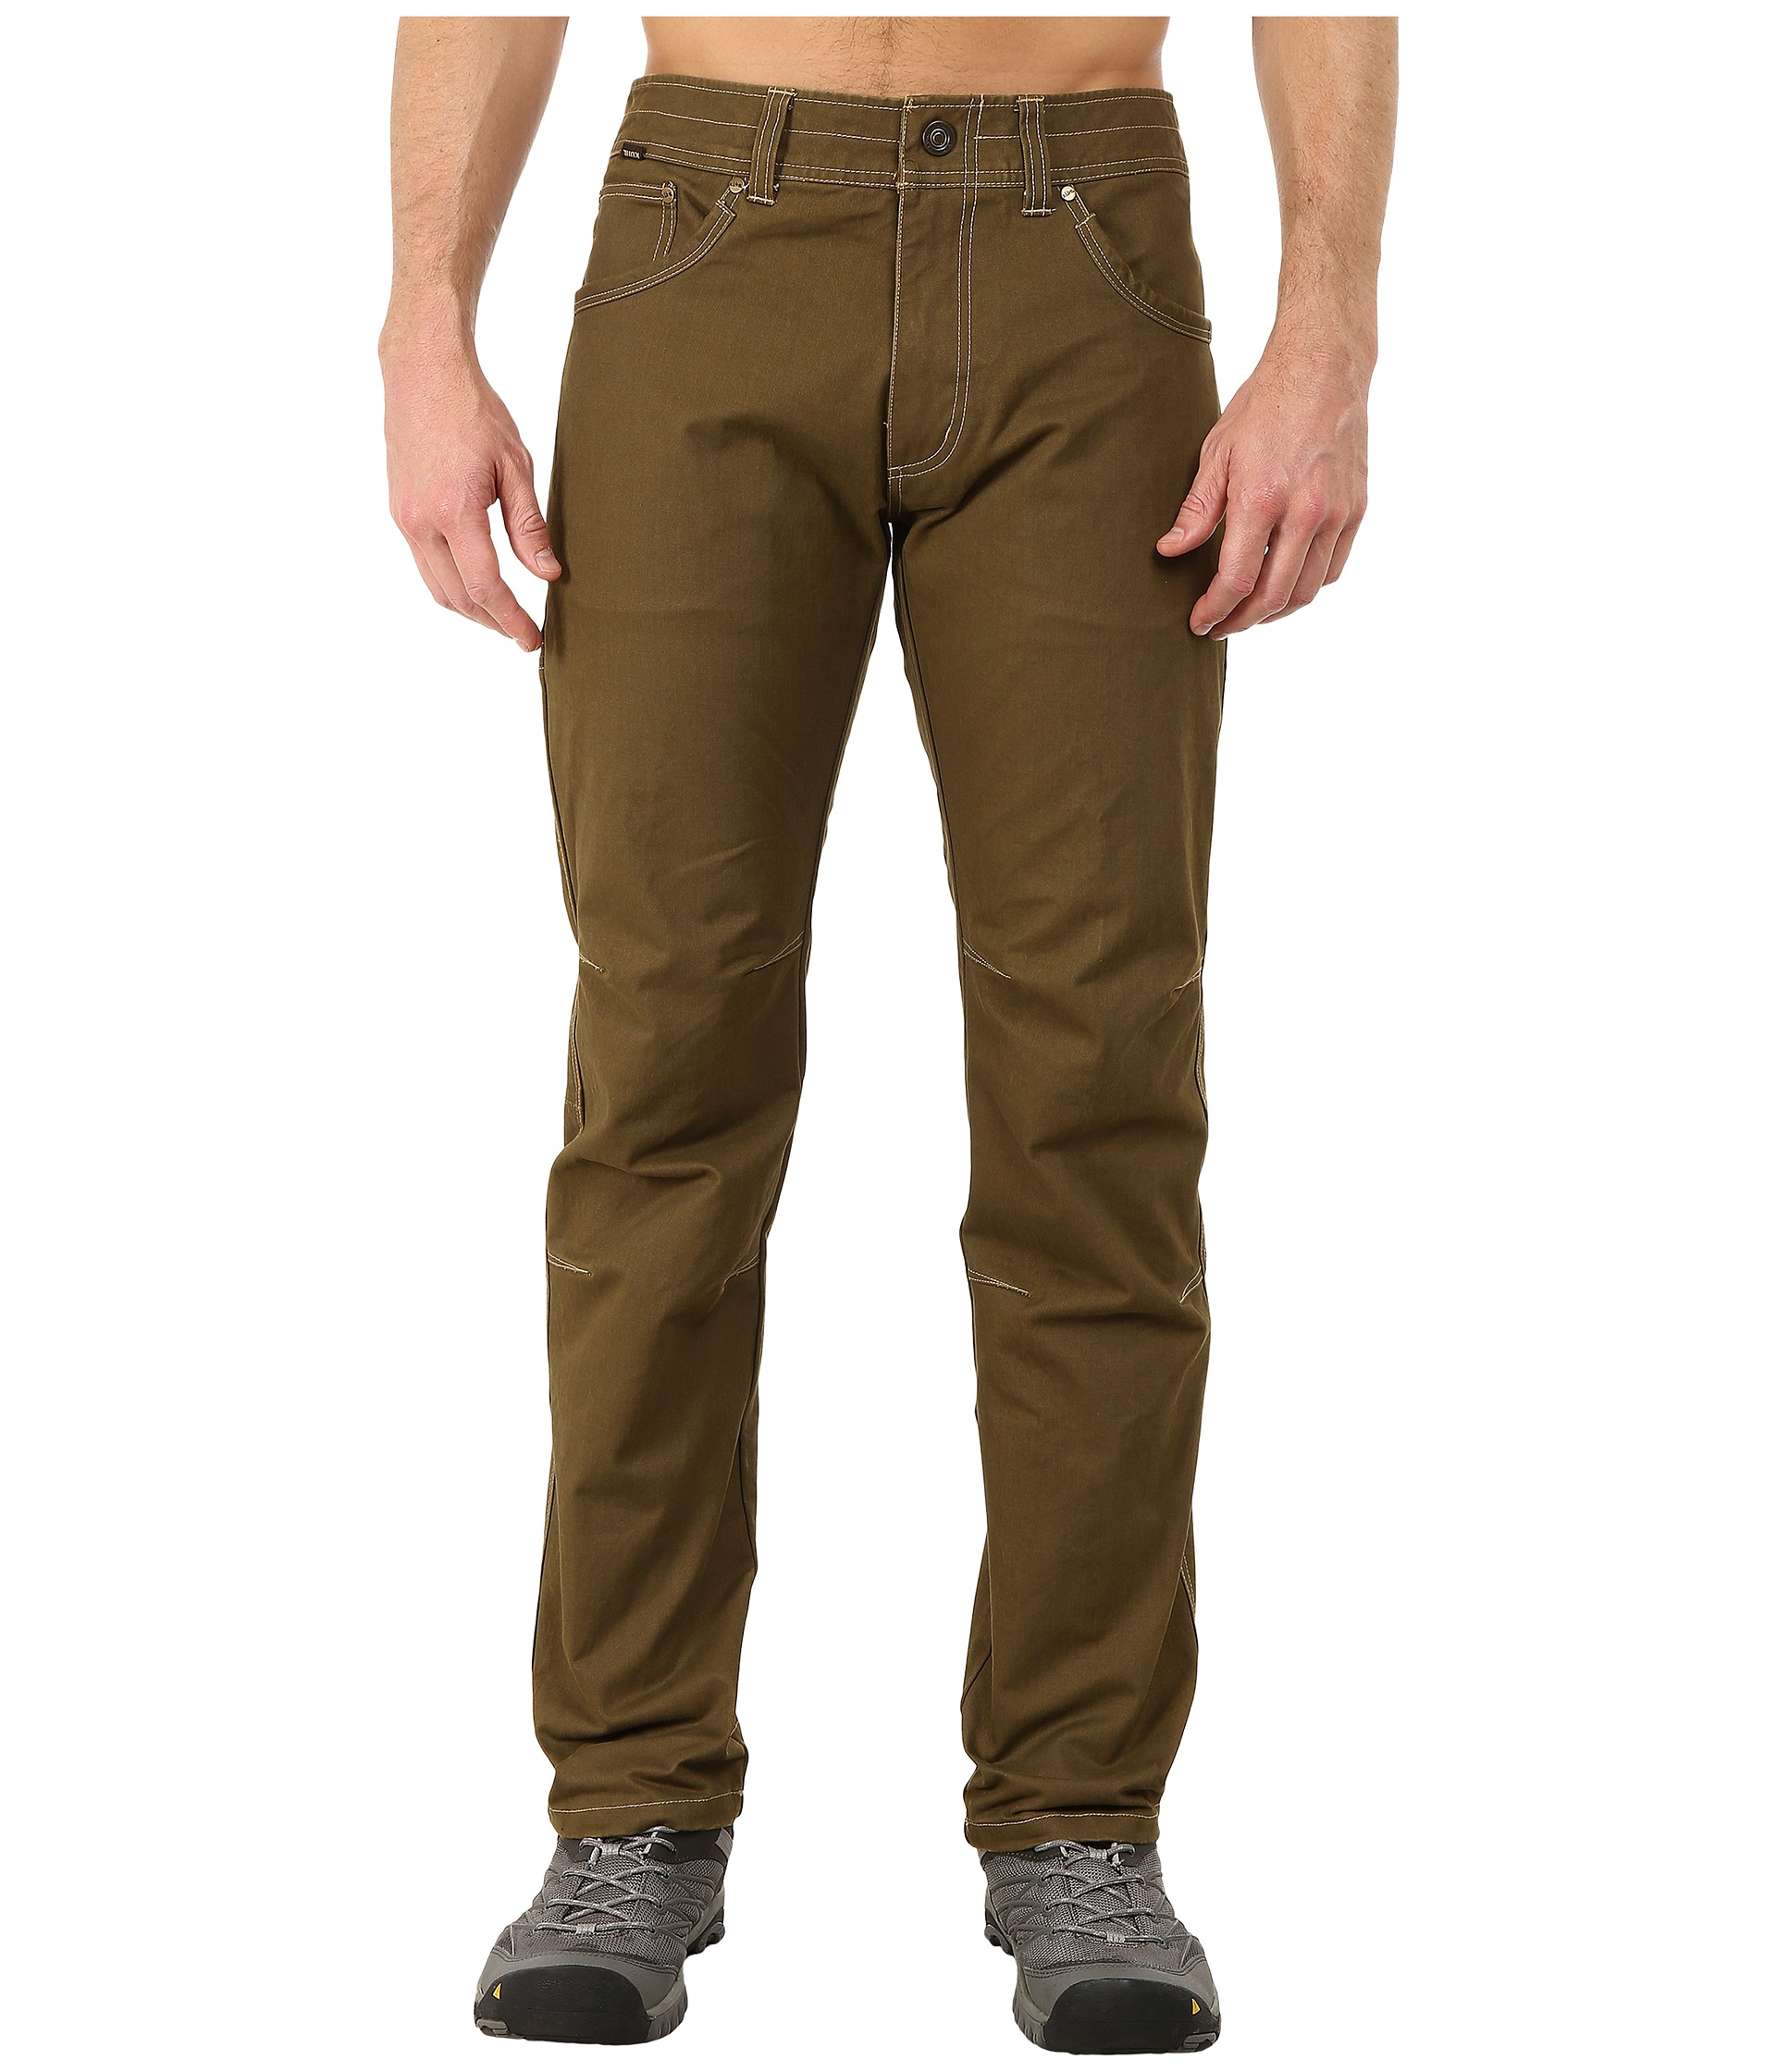 KUHL Rydr™ Lean Fit Jeans at Zappos.com